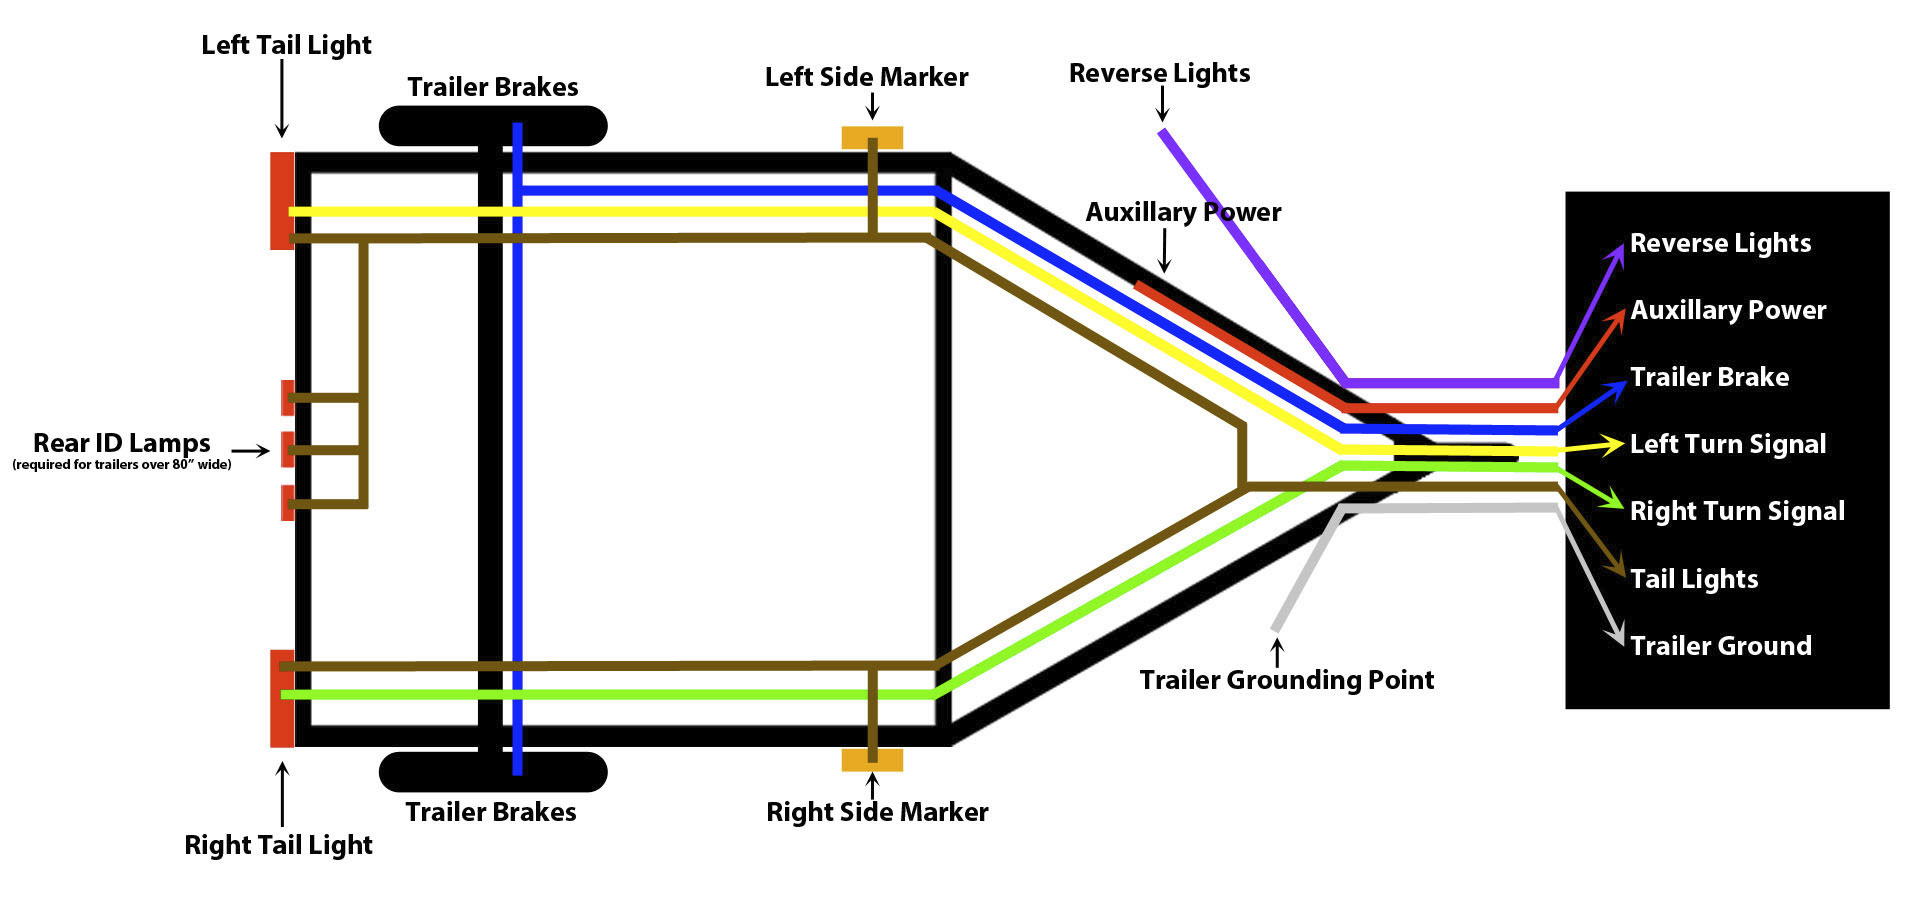 How To Wire Trailer Lights - Trailer Wiring Guide & Videos - 7 Way Wiring Diagram Trailer